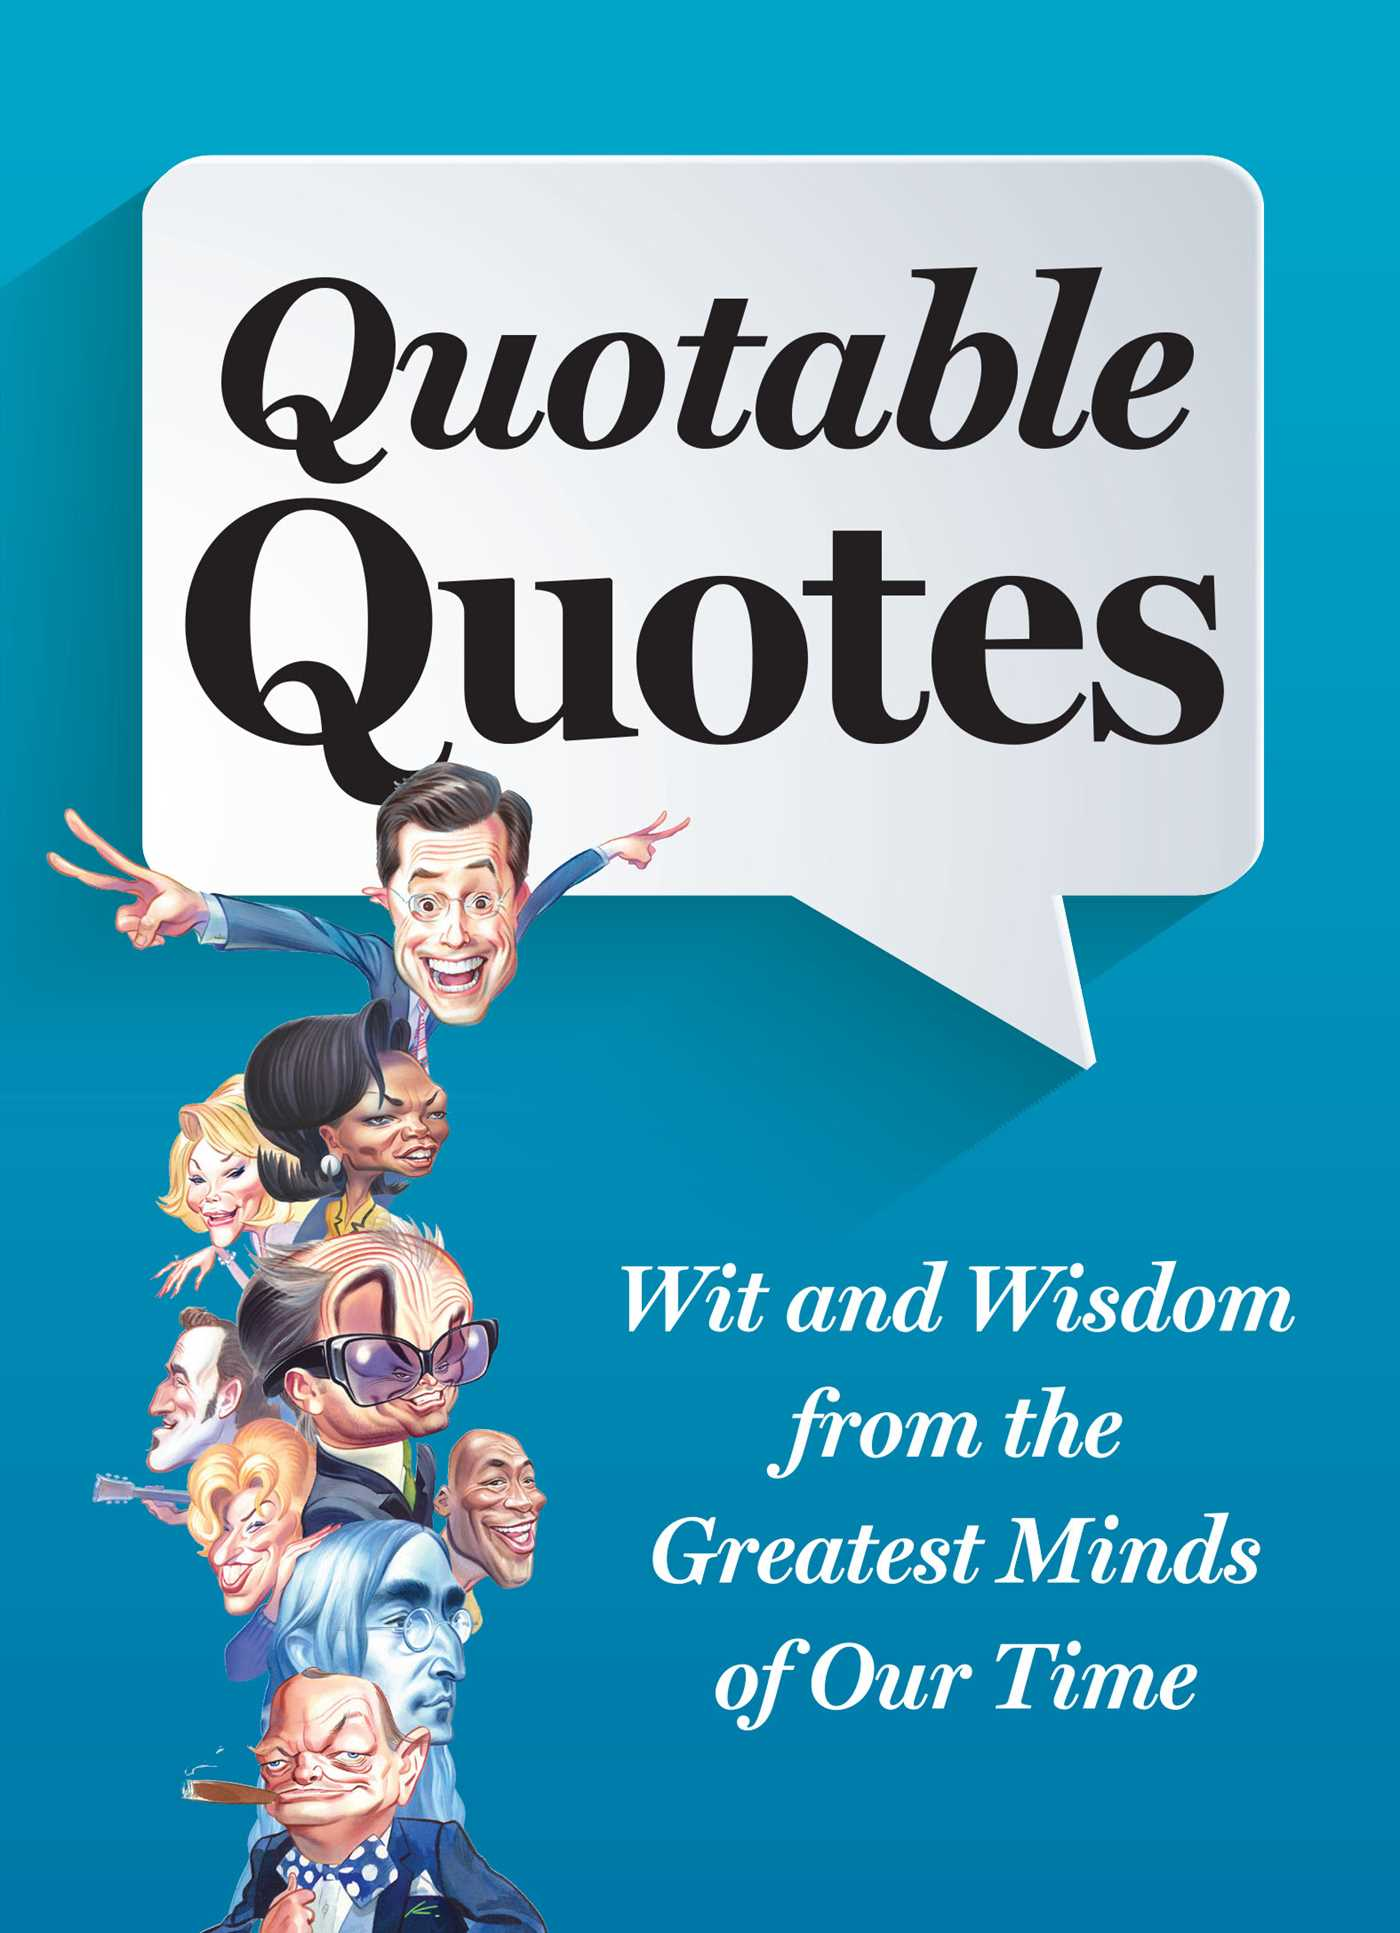 Quotable Quotes Quotable Quotes Revised And Updated  Bookeditors At Reader's